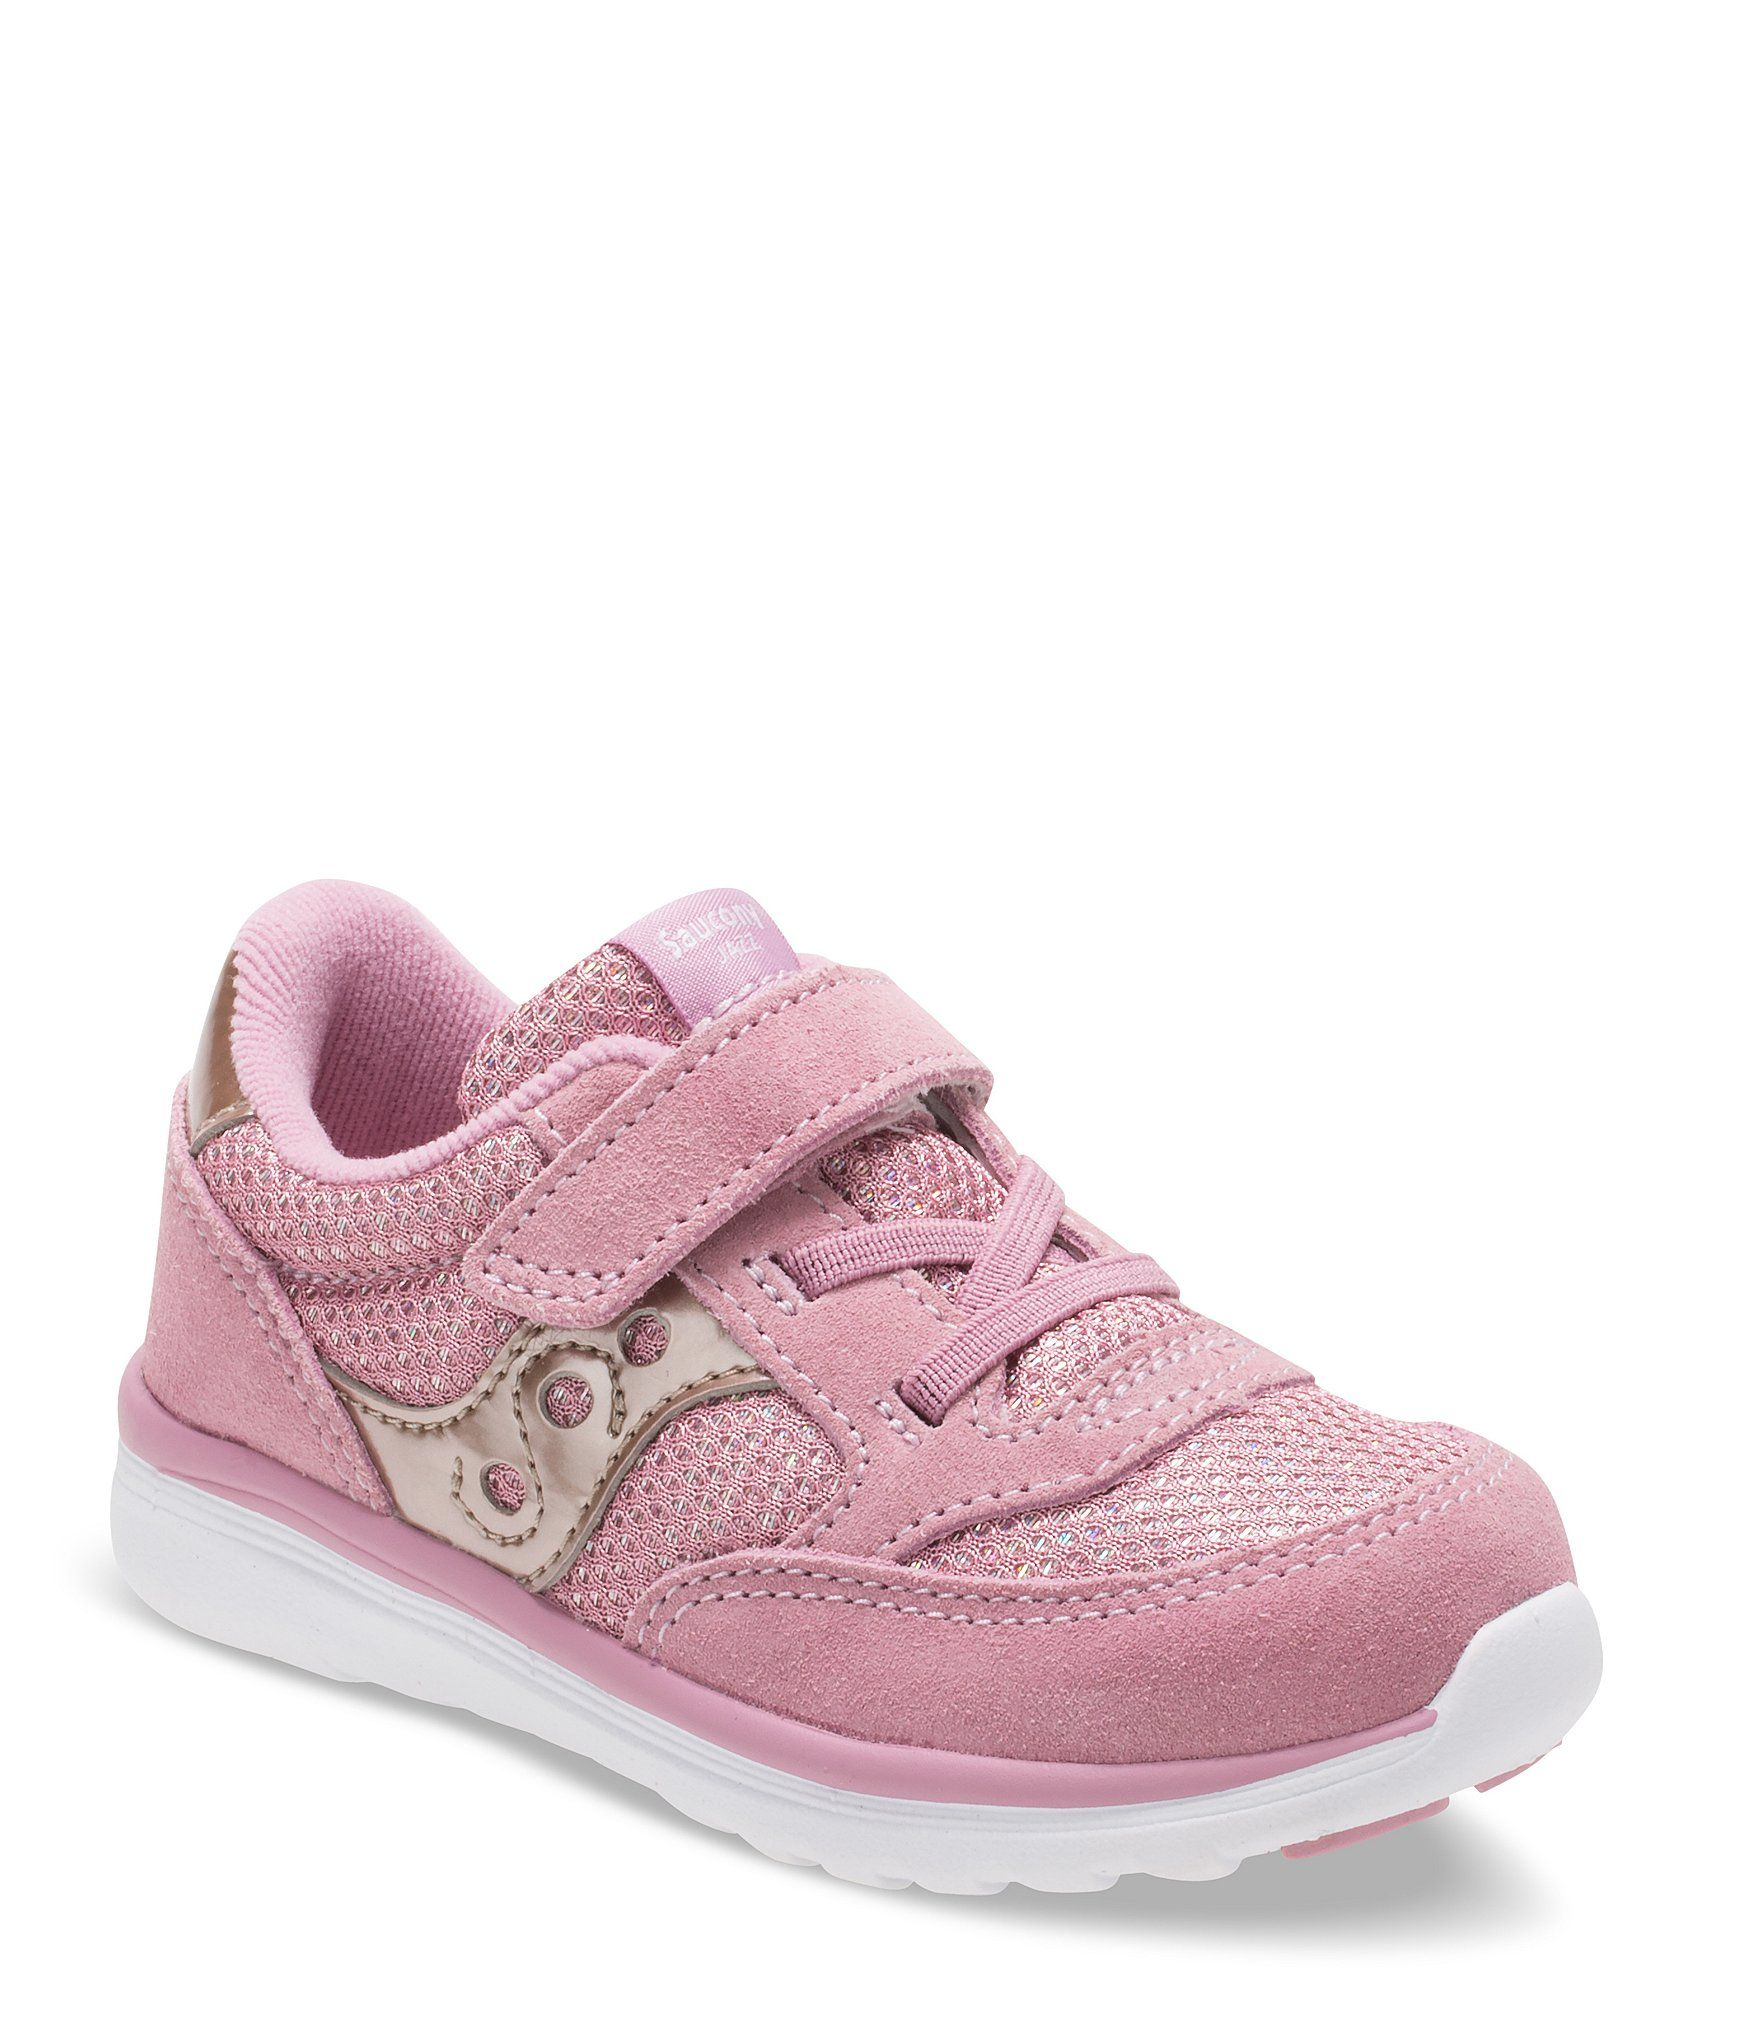 From Saucony, the Girls' Baby Originals Jazz Lite Sneaker features:Nylon and suede upper in a retro silhouetteStitched elements for durabilityIconic side logo for a timeless lookHook-and-loop with elastic lace closure for a snug fitPadded tongue and collar for all-day comfortTextile liningCushioned textile footbedLightweight EVA midsole for cushioning that won't weigh you downDurable rubber outsoleAPMA approved for the health and comfort of your little one